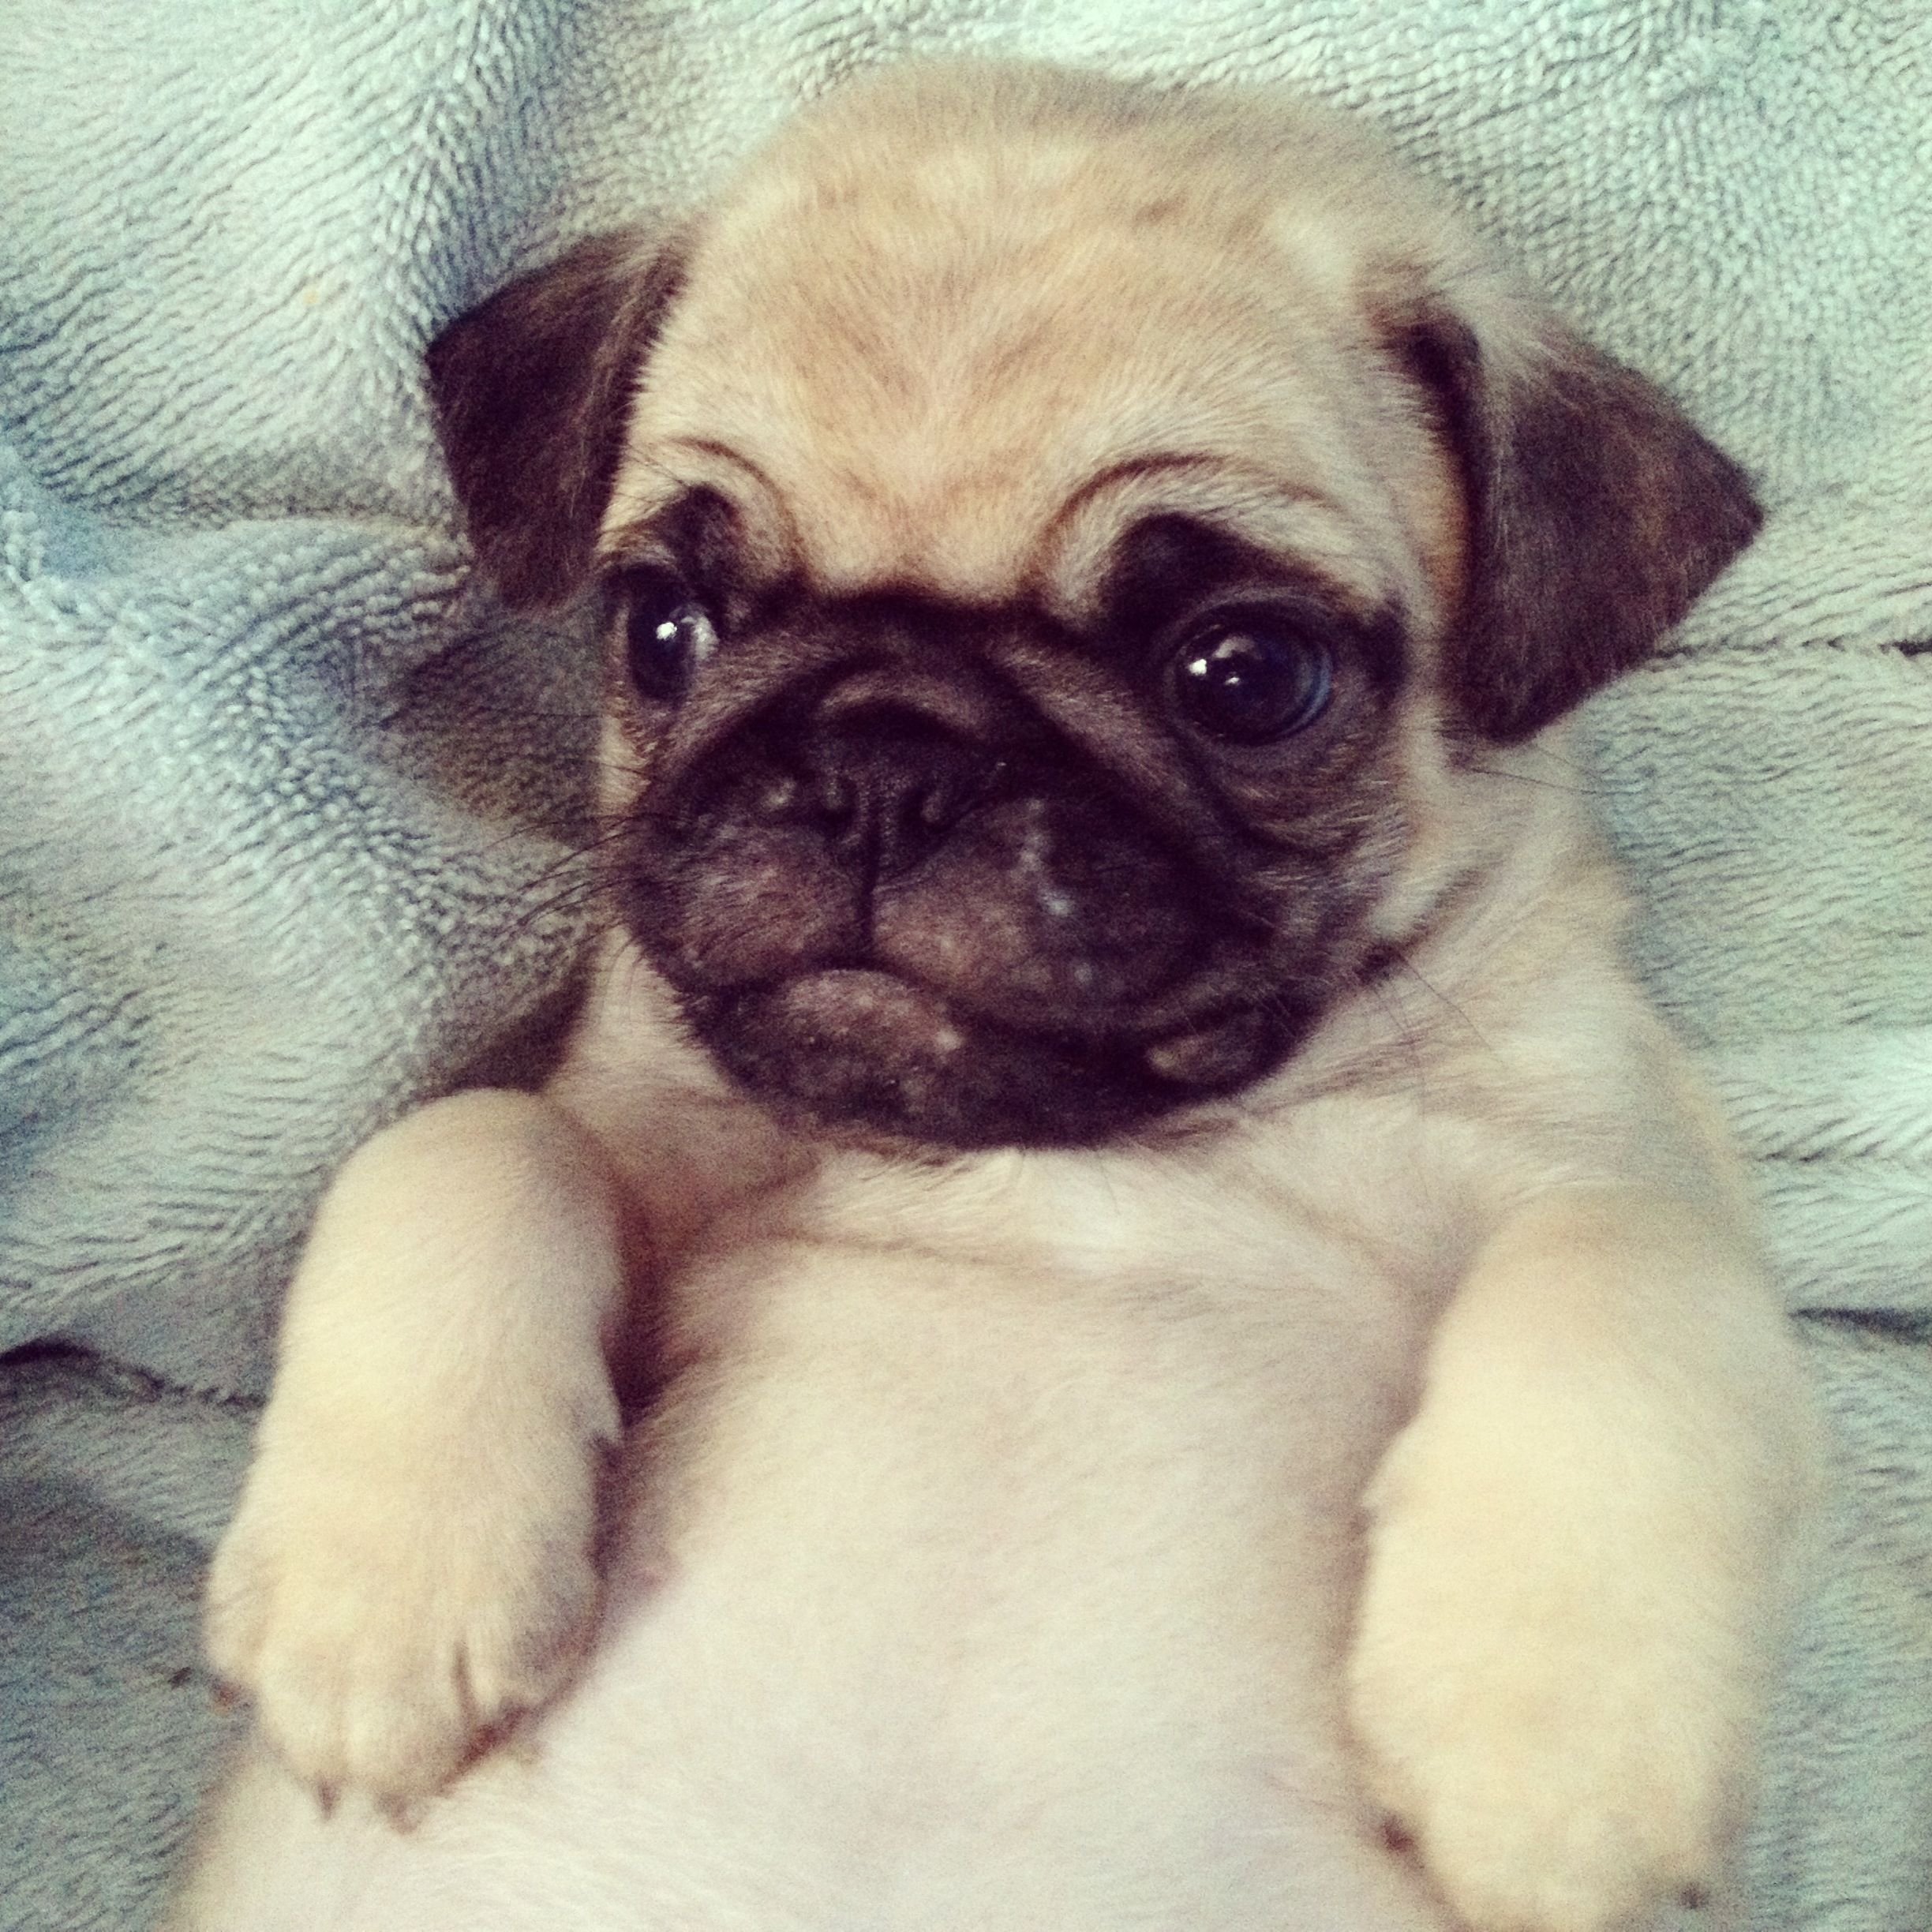 The Most Adorable Pug Puppy Ever Cute Pugs